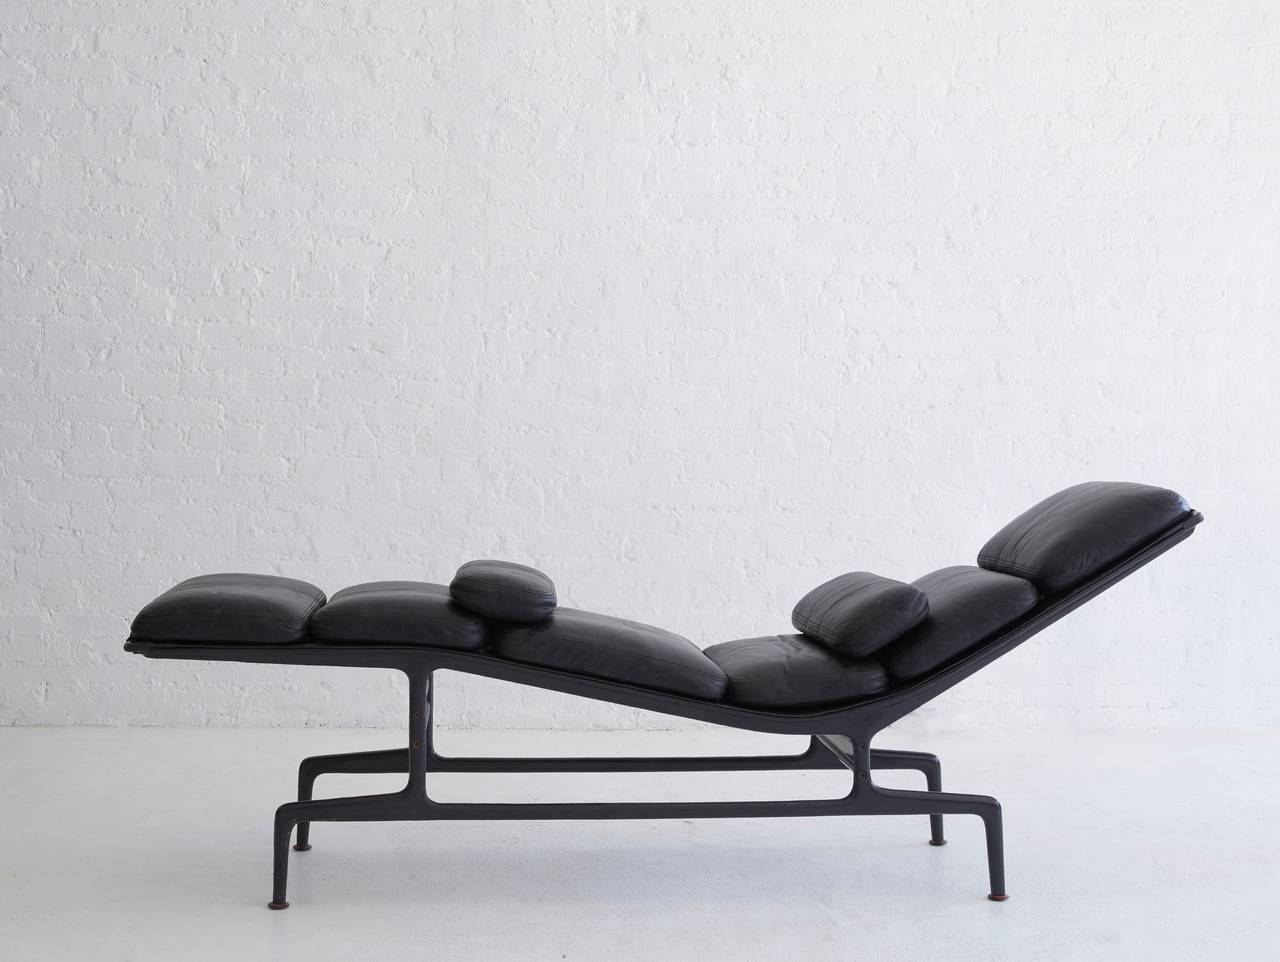 Eames chaise longue for billy wilder at 1stdibs for Chaise design eames